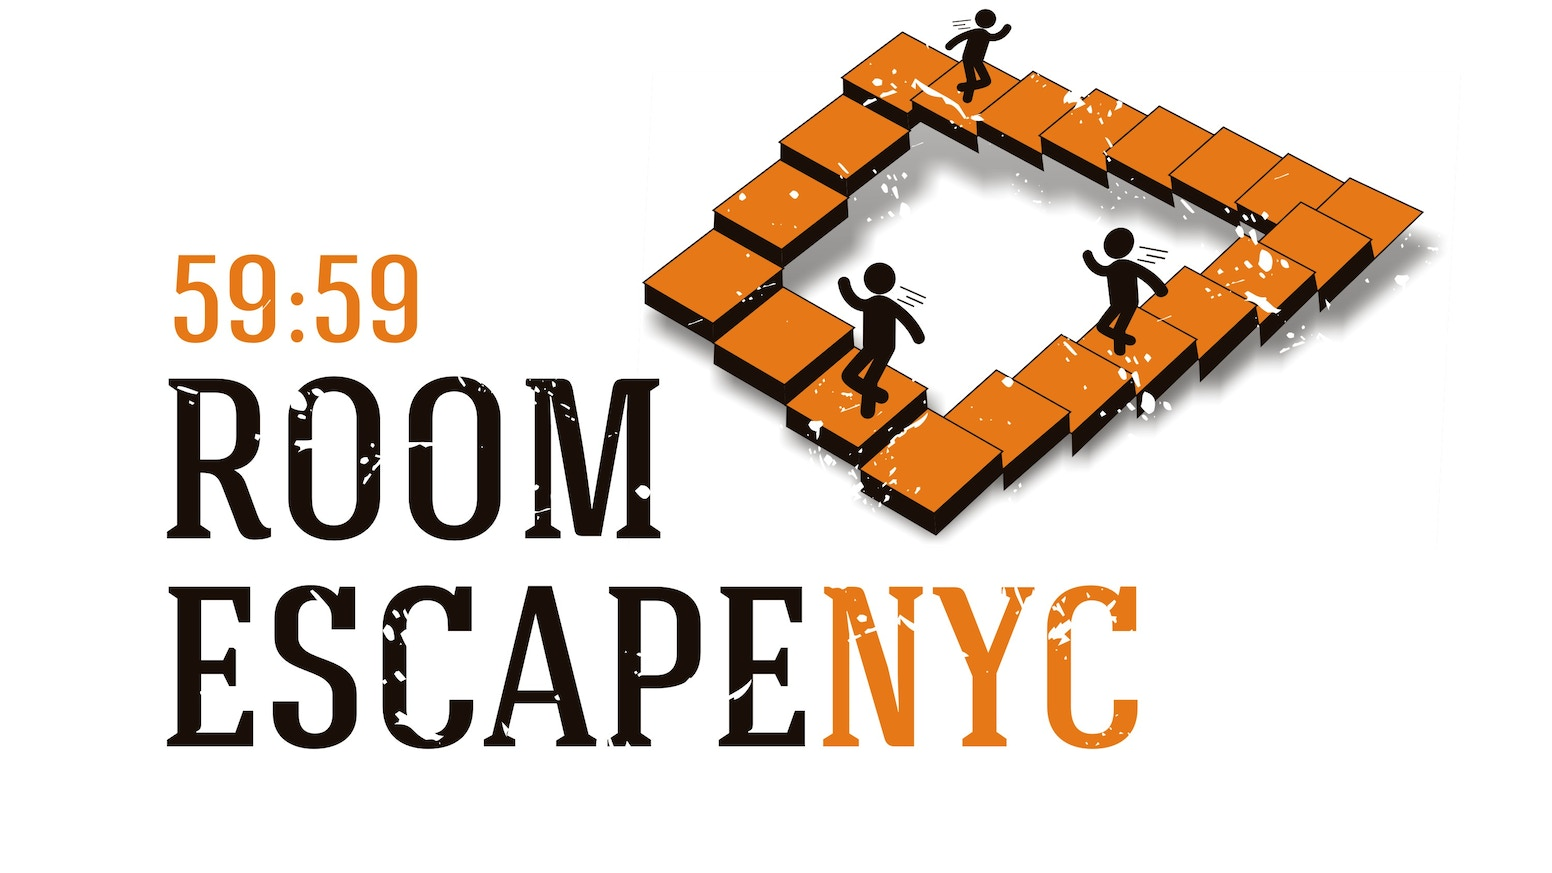 i room escape dig nyc the houston